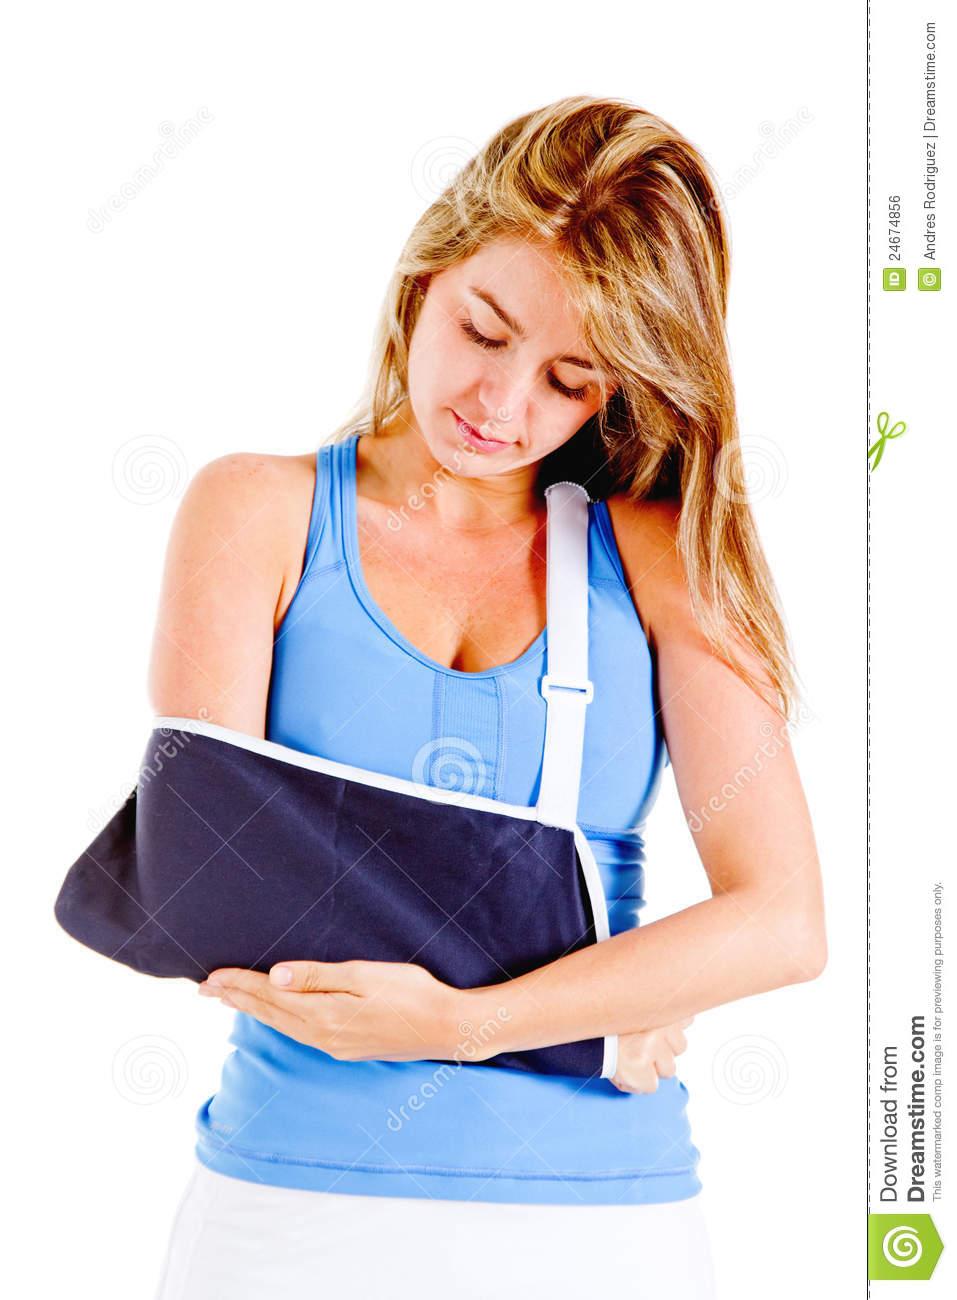 Woman With Broken Arm Royalty Free Stock Image - Image: 24674856